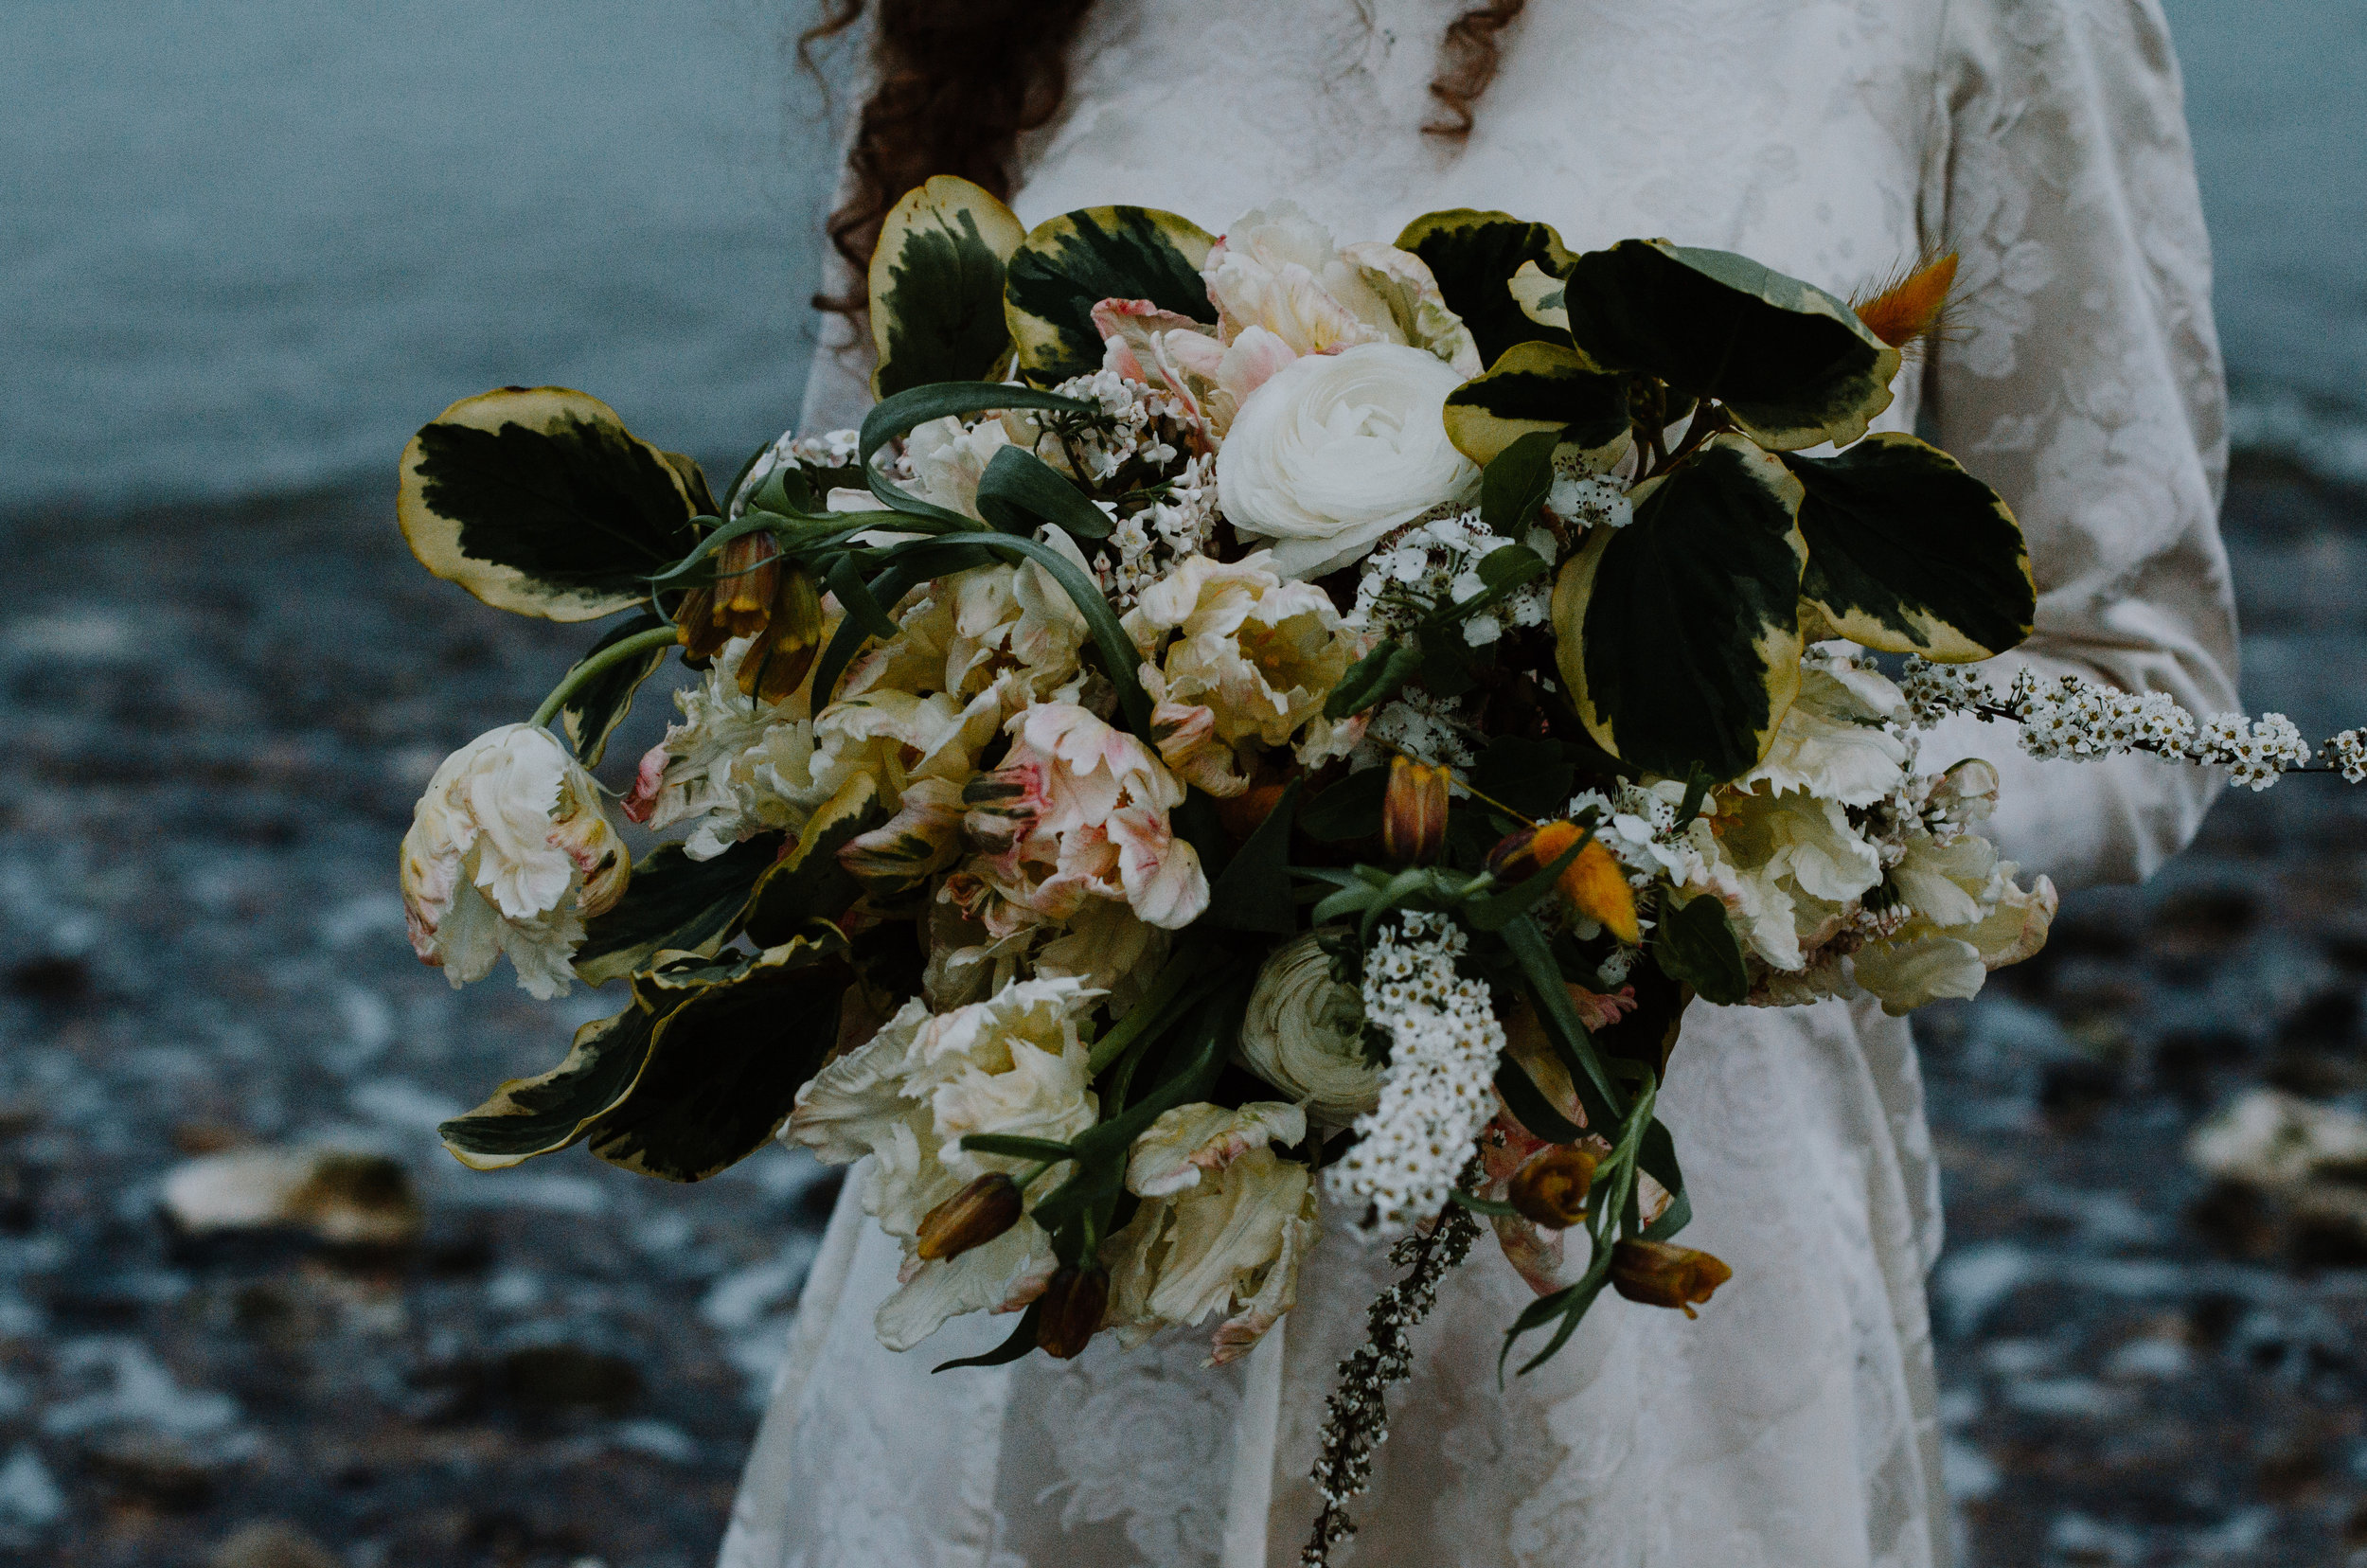 Bridal - Cuckmere Haven 2018 - Aiste Saulyte Photography-171.jpg